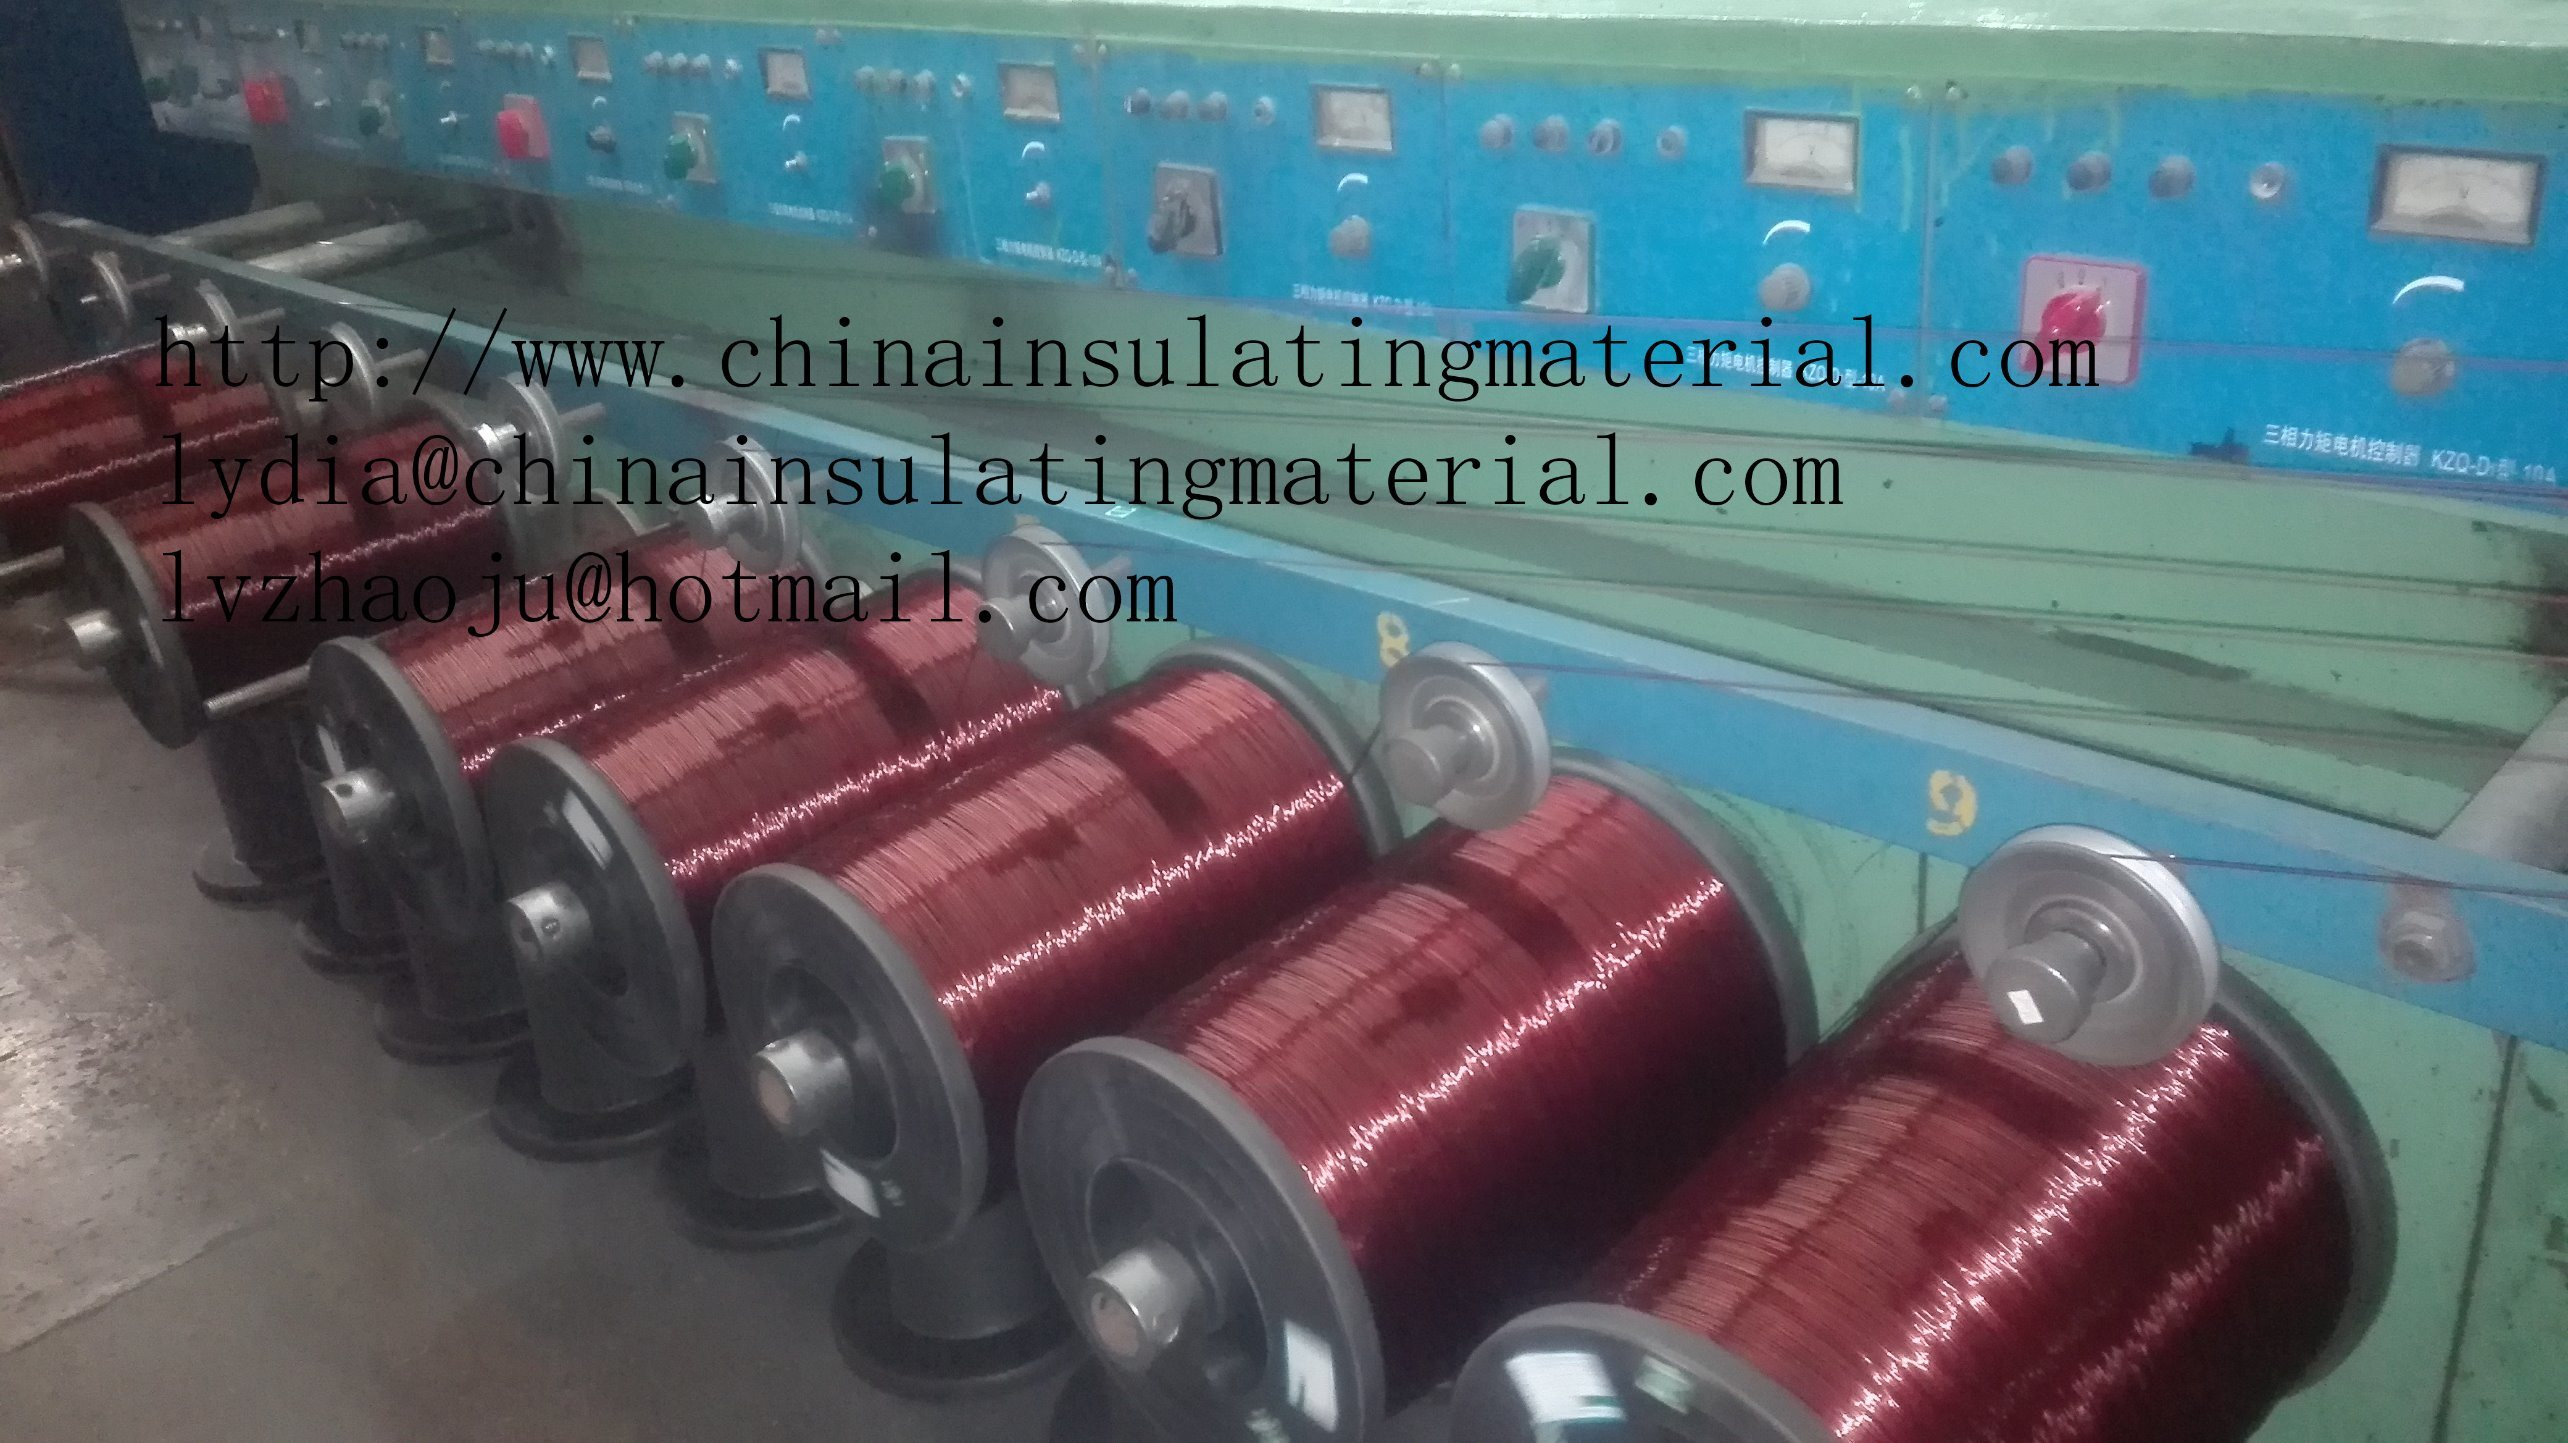 China Enameled Aluminum Round Wire 200degree. Ei/Aiw, Transformer ...